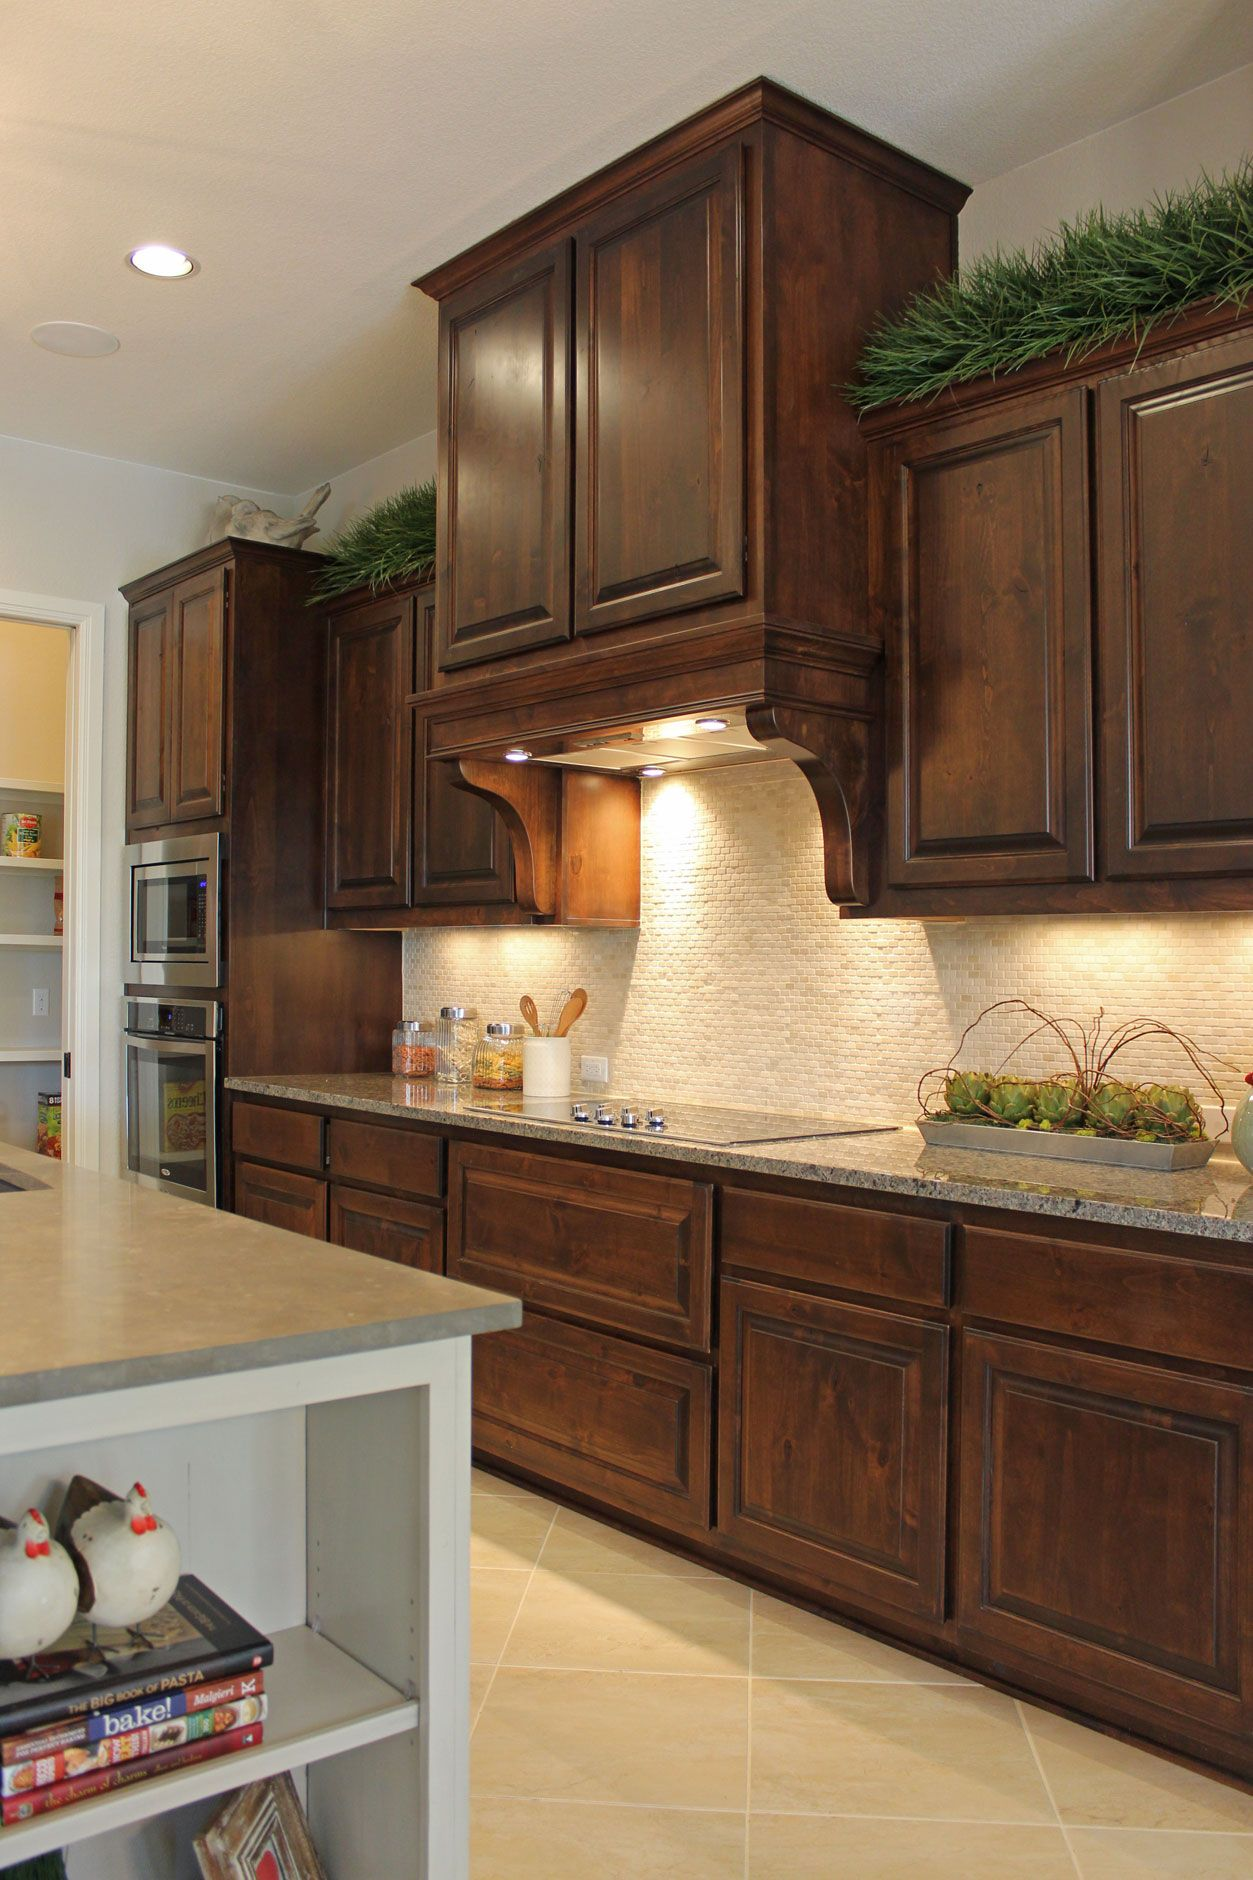 Burrows cabinets 39 kitchen cabinets in stained knotty alder for Vent hoods for kitchens